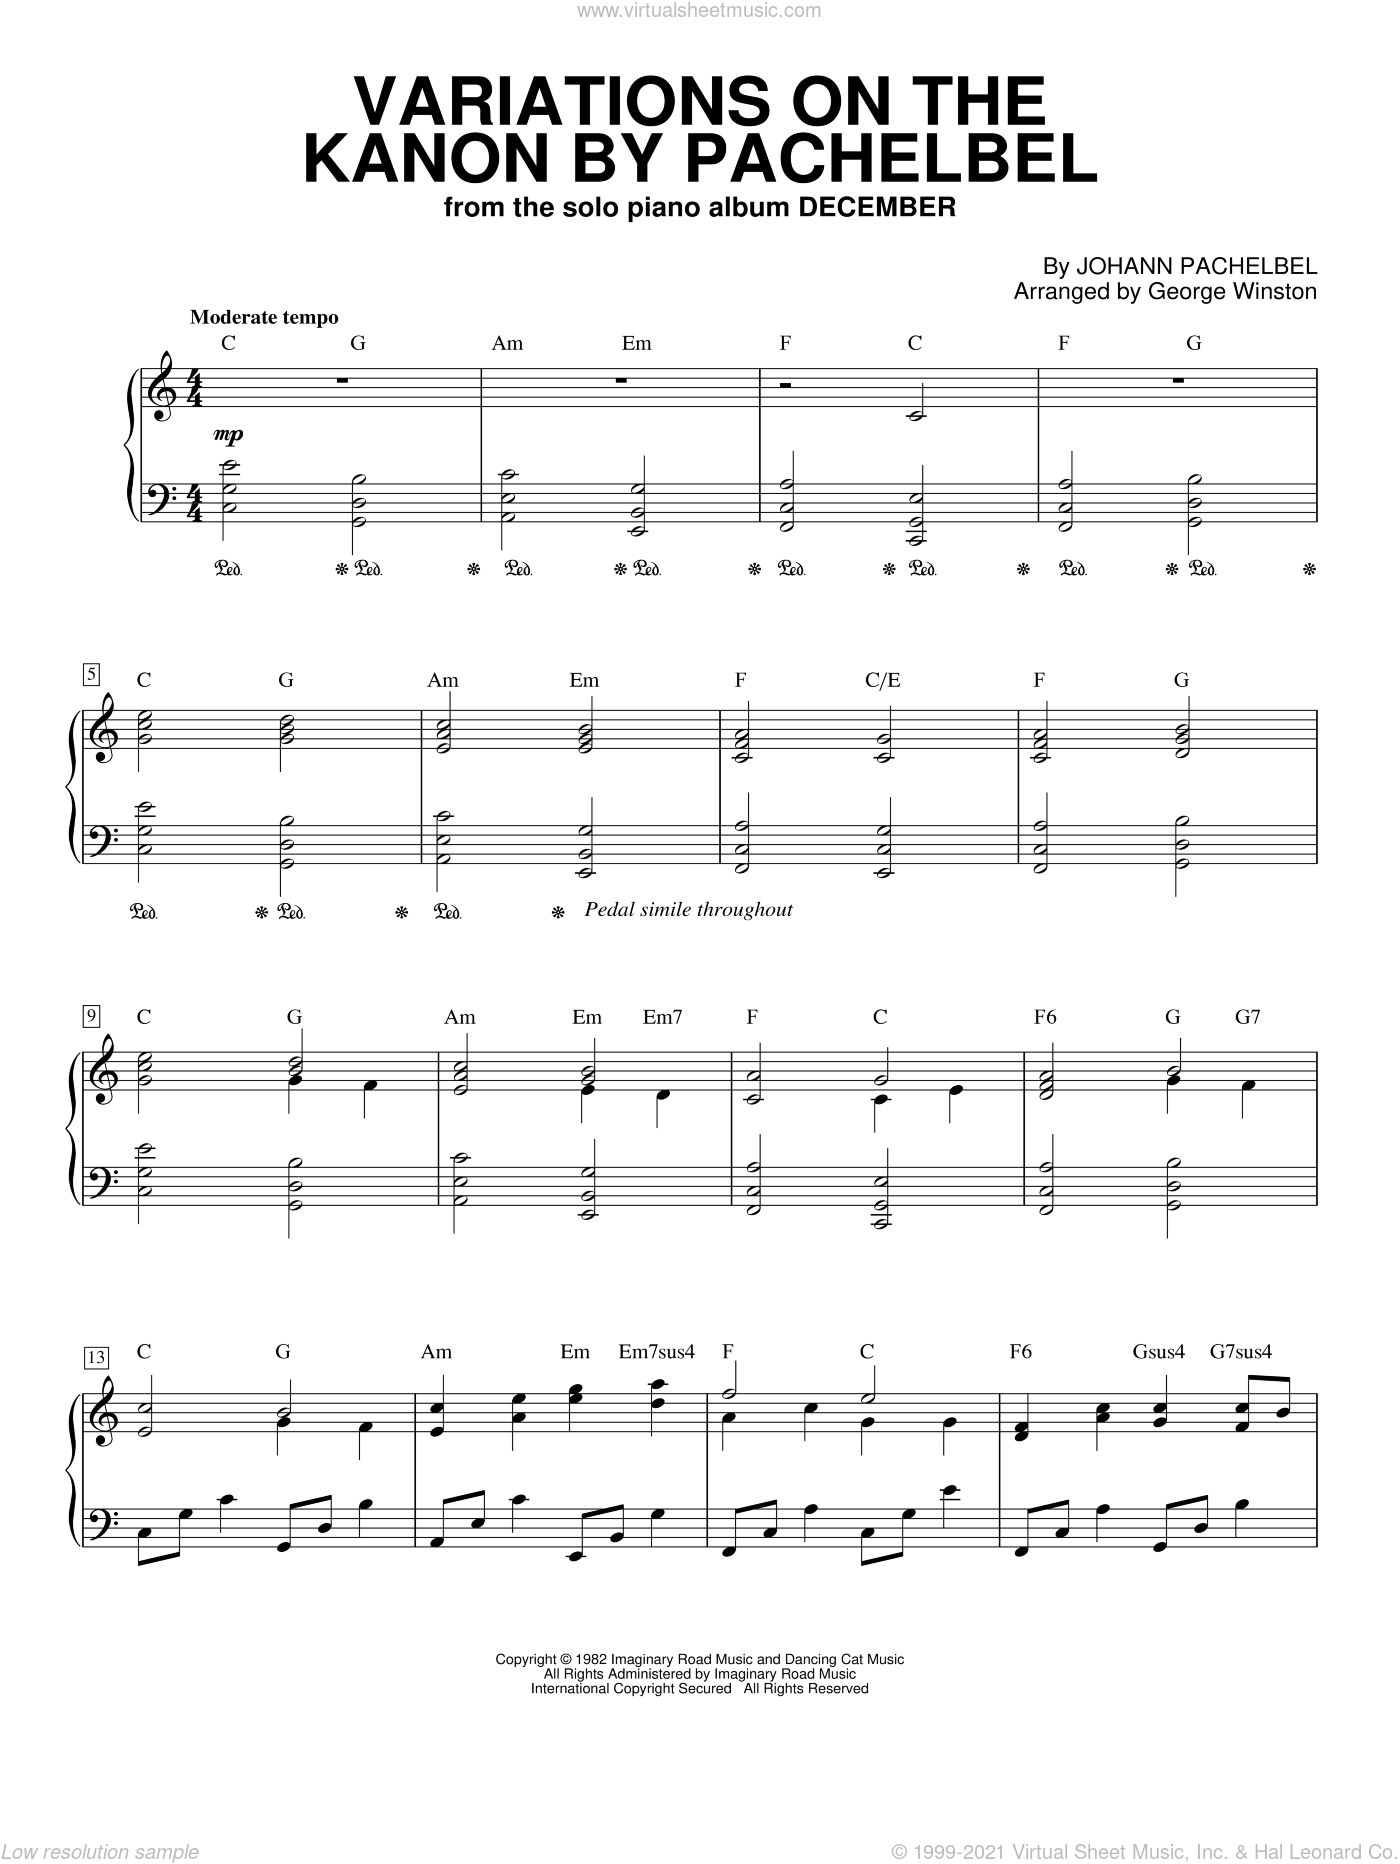 Variations On The Kanon By Pachelbel sheet music for piano solo by Johann Pachelbel